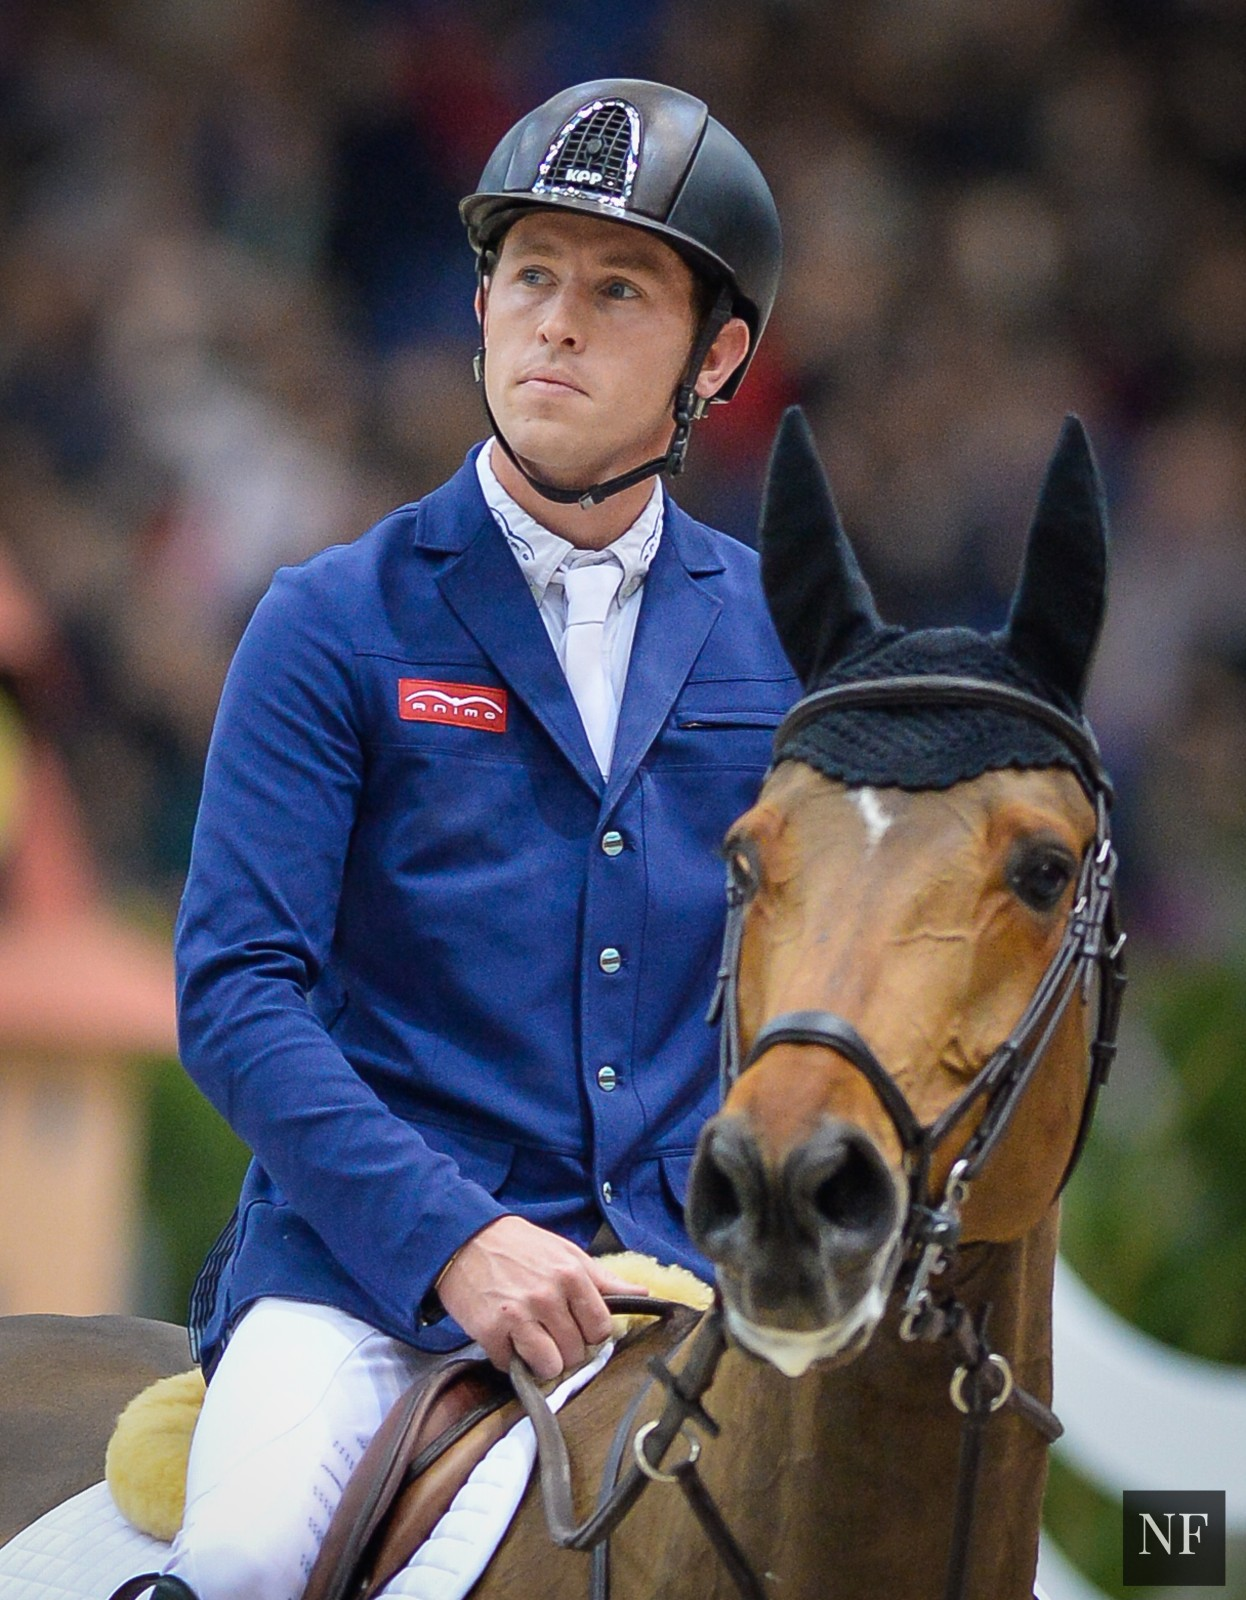 Horse Times Egypt: Equestrian Magazine :News :NO RIO OLYMPICS FOR THE HONORED SCOTT BRASH